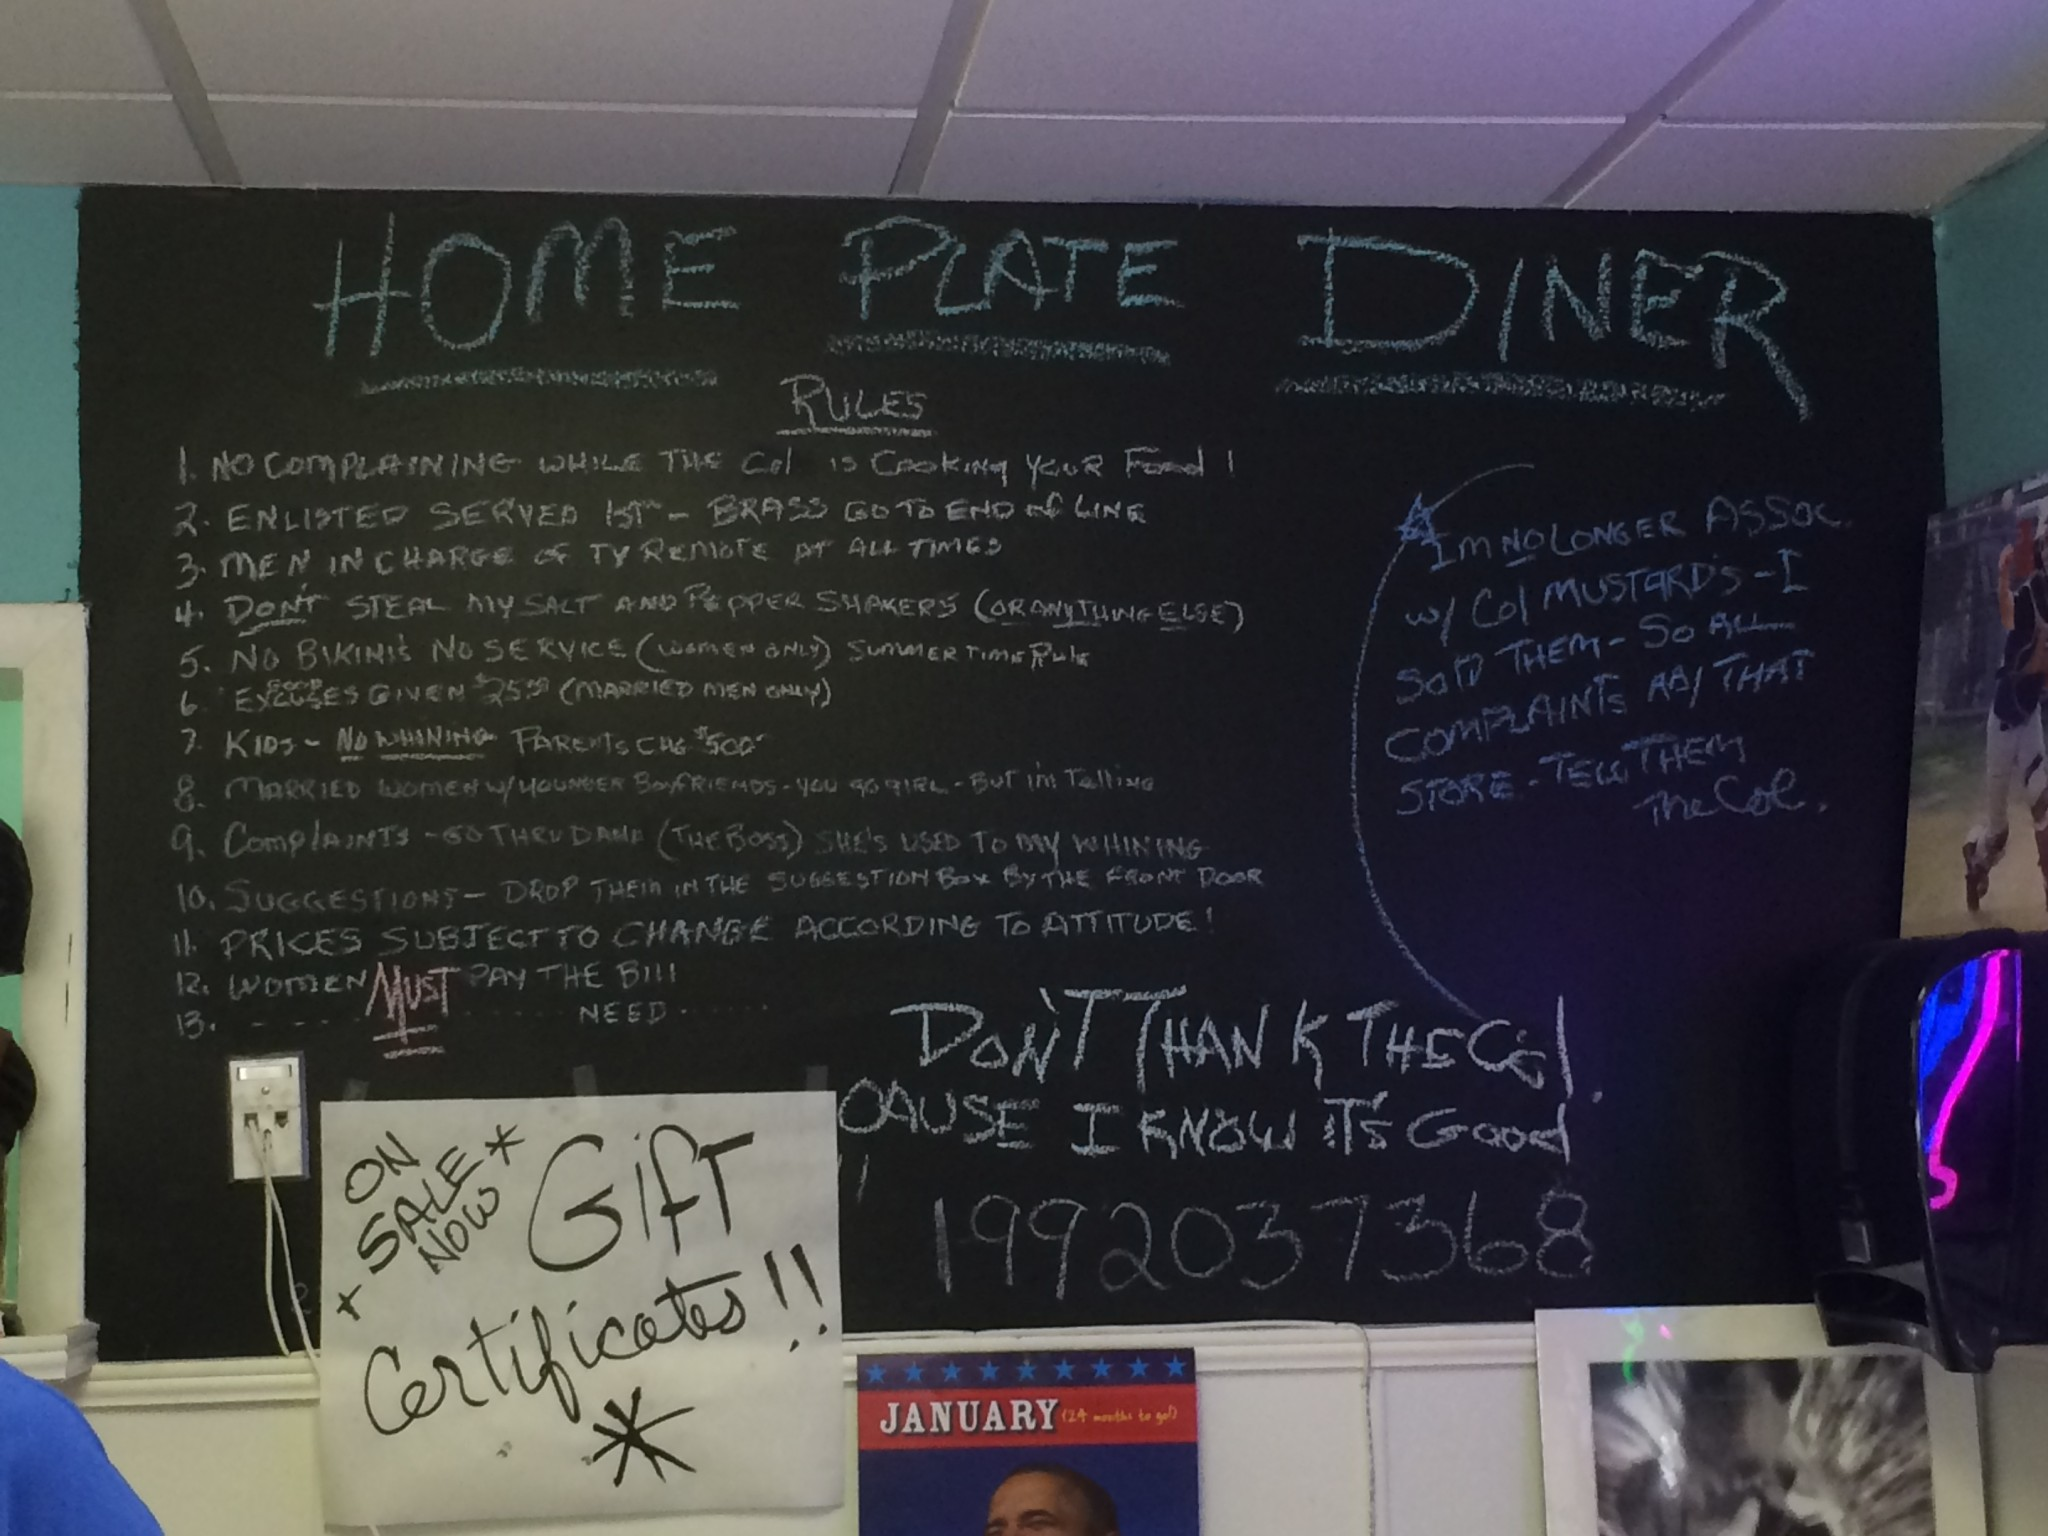 Home Plate Diner - Rules & Home Plate Diner - A Quirky Place with Solid Breakfast and Lunch ...